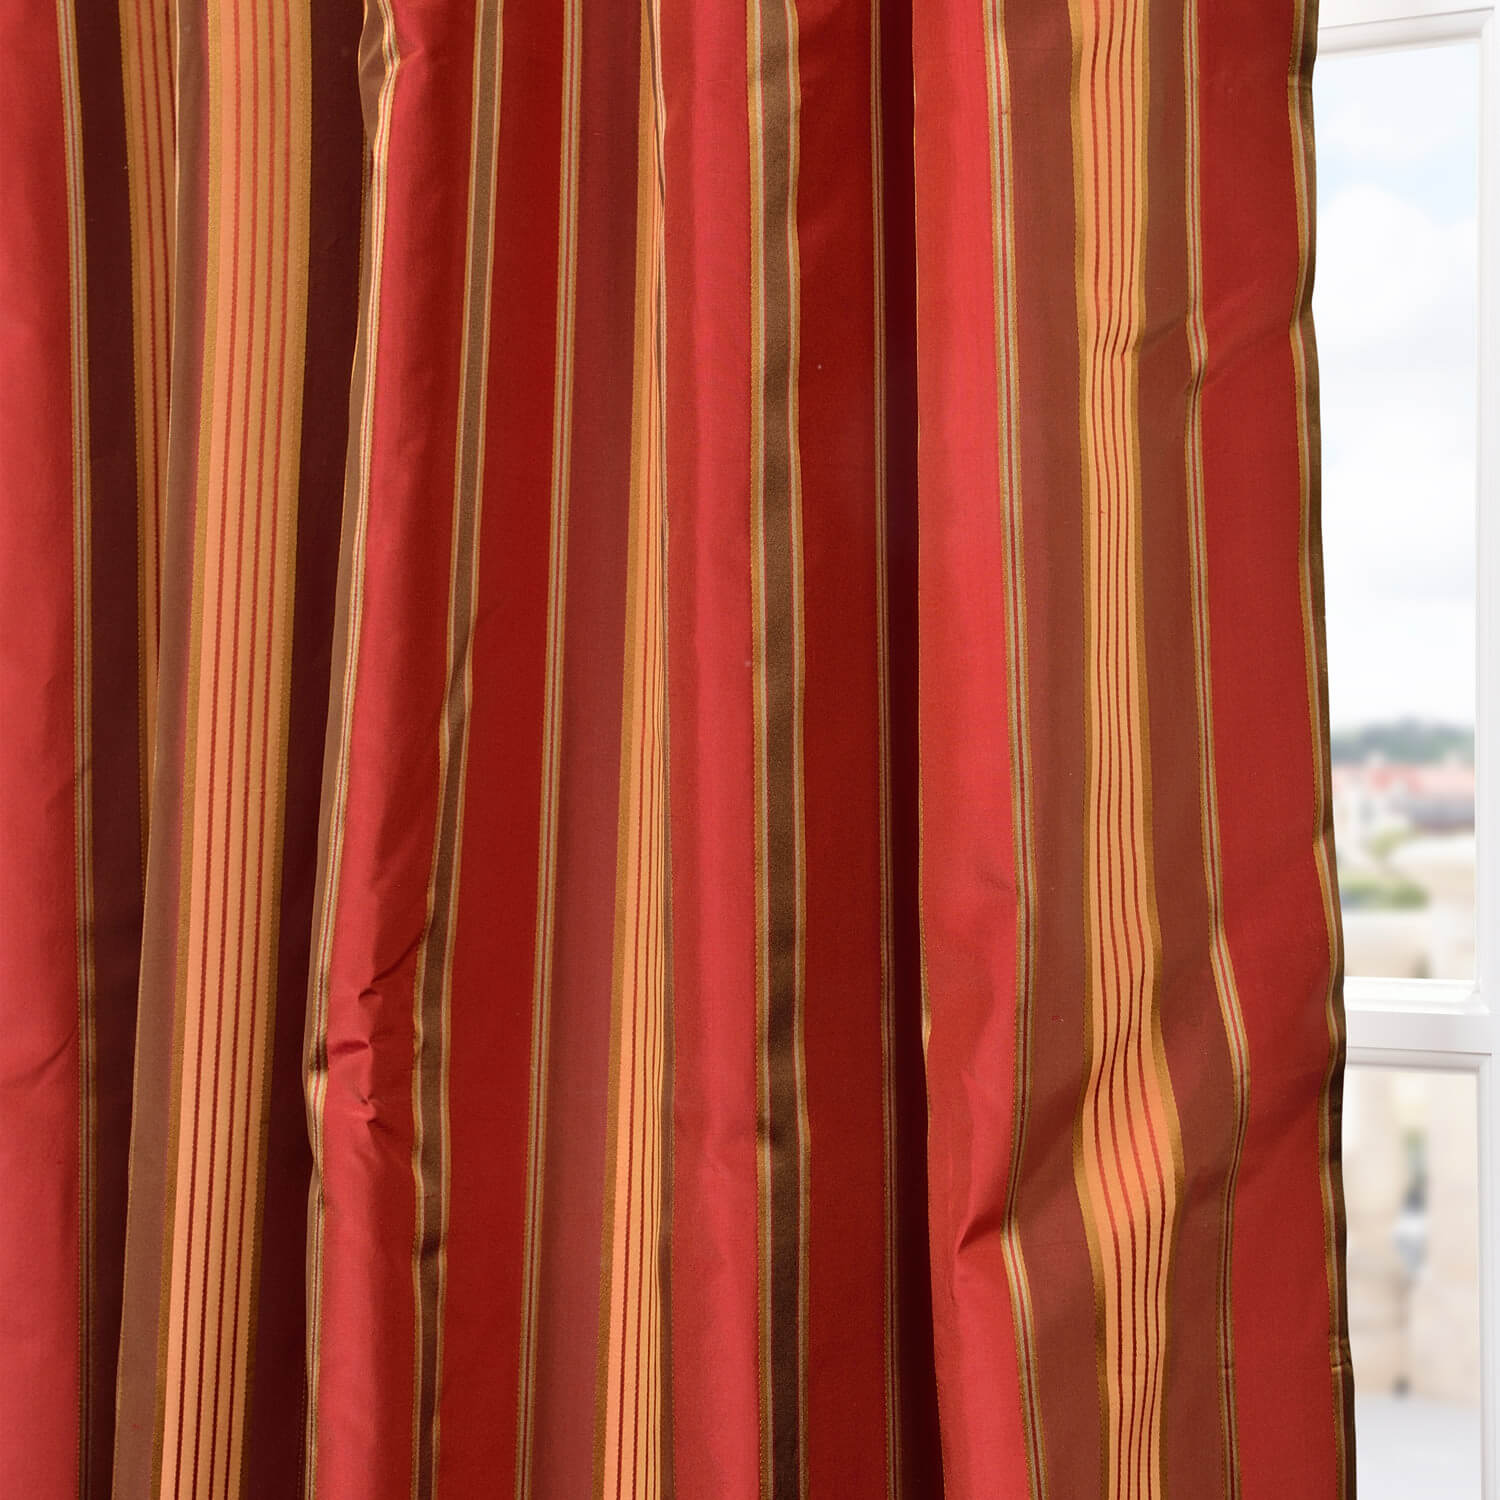 Melrose Silk Taffeta Satin Stripe Swatch